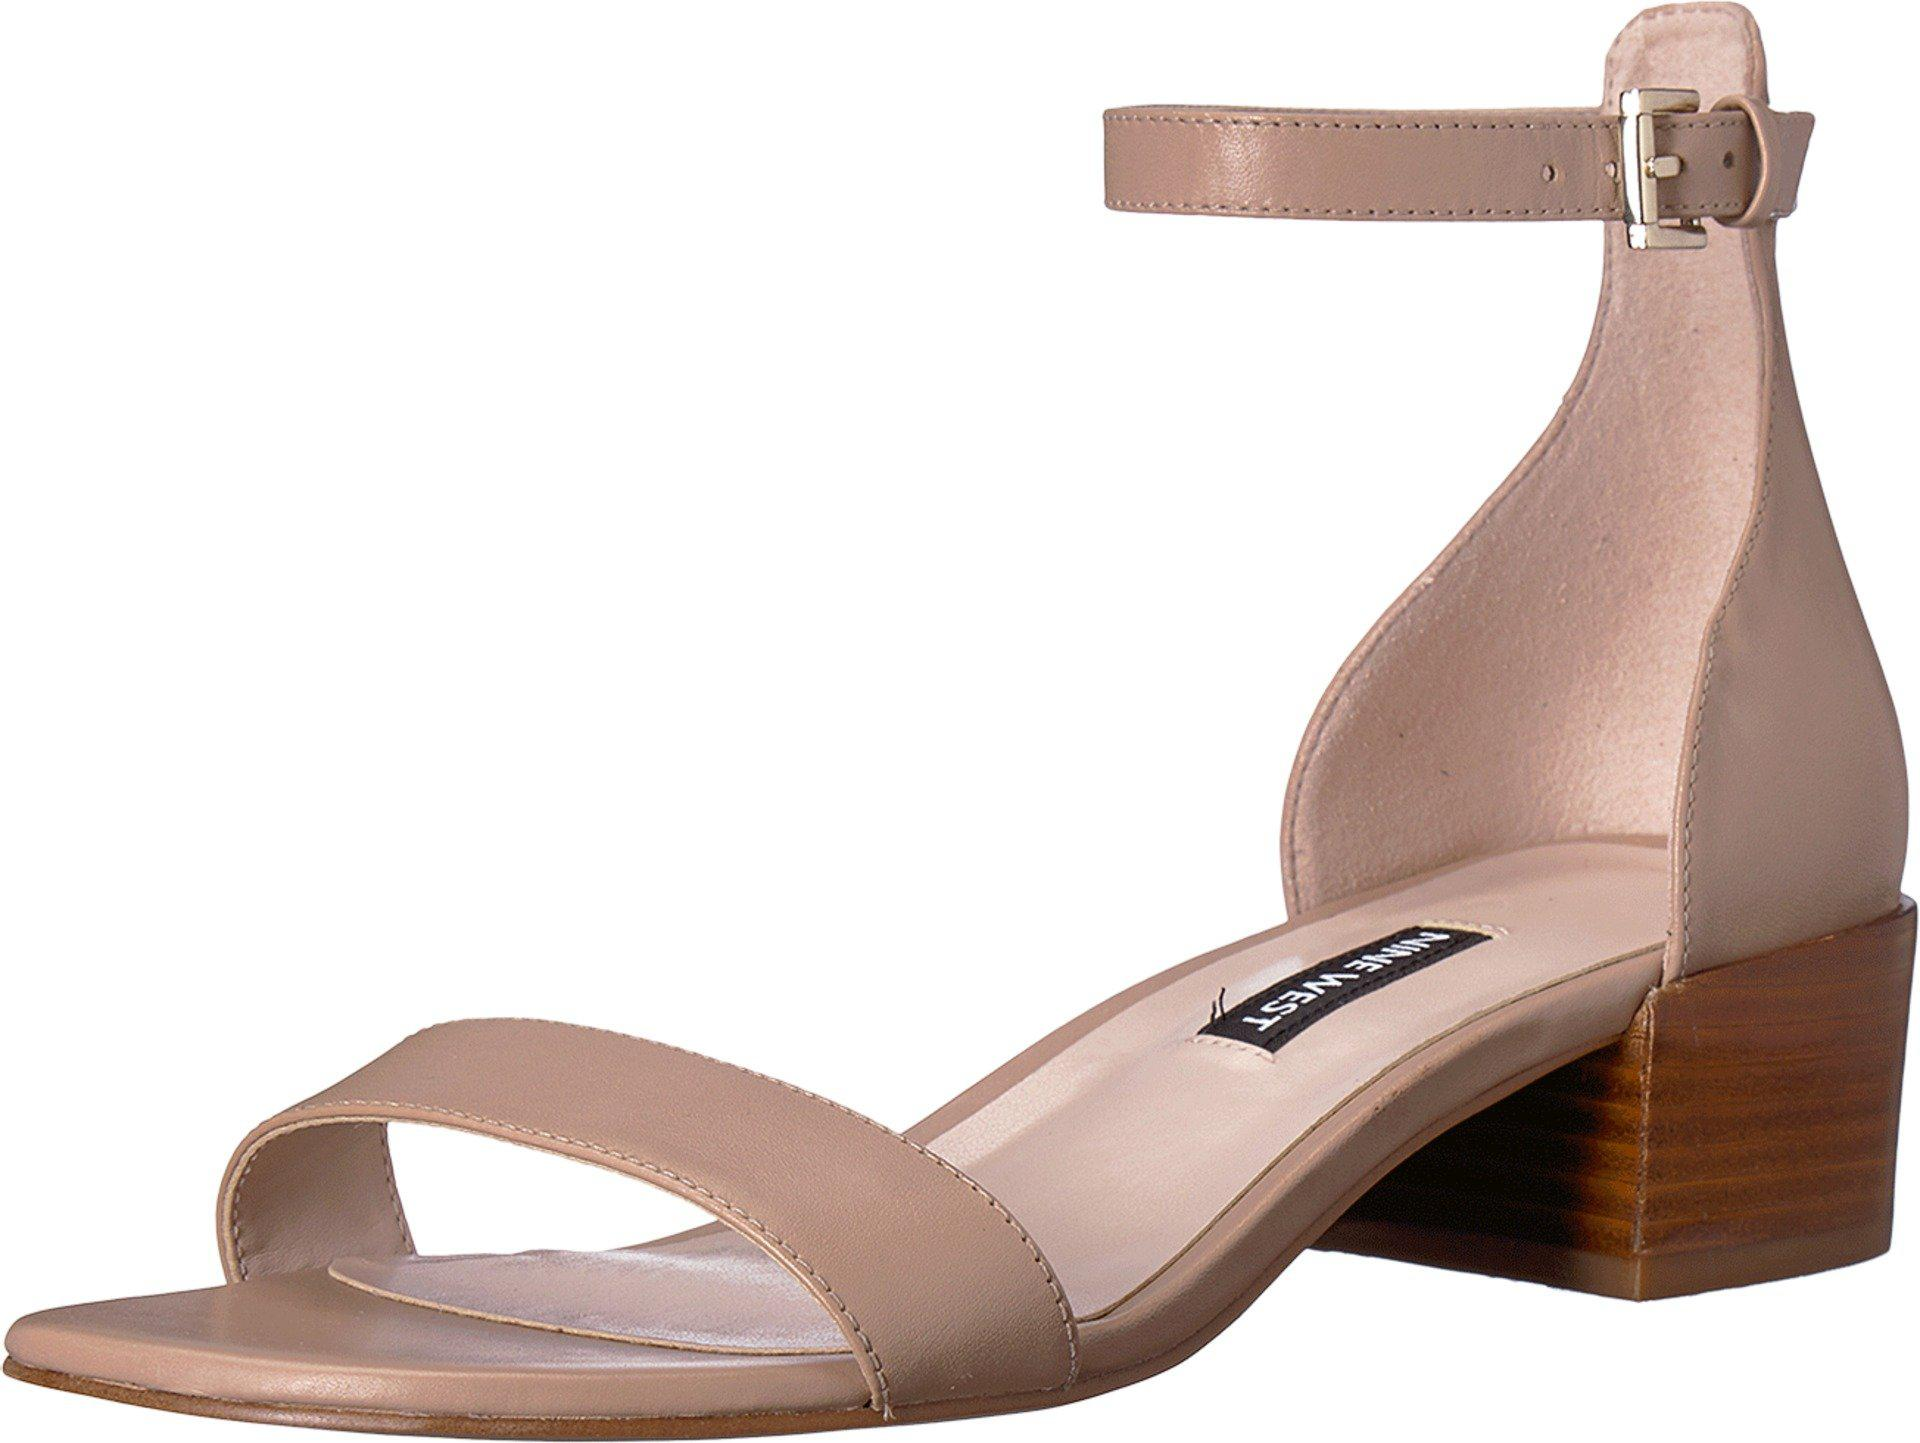 Xuxa Block Heel Sandal Nine West jzd7VV